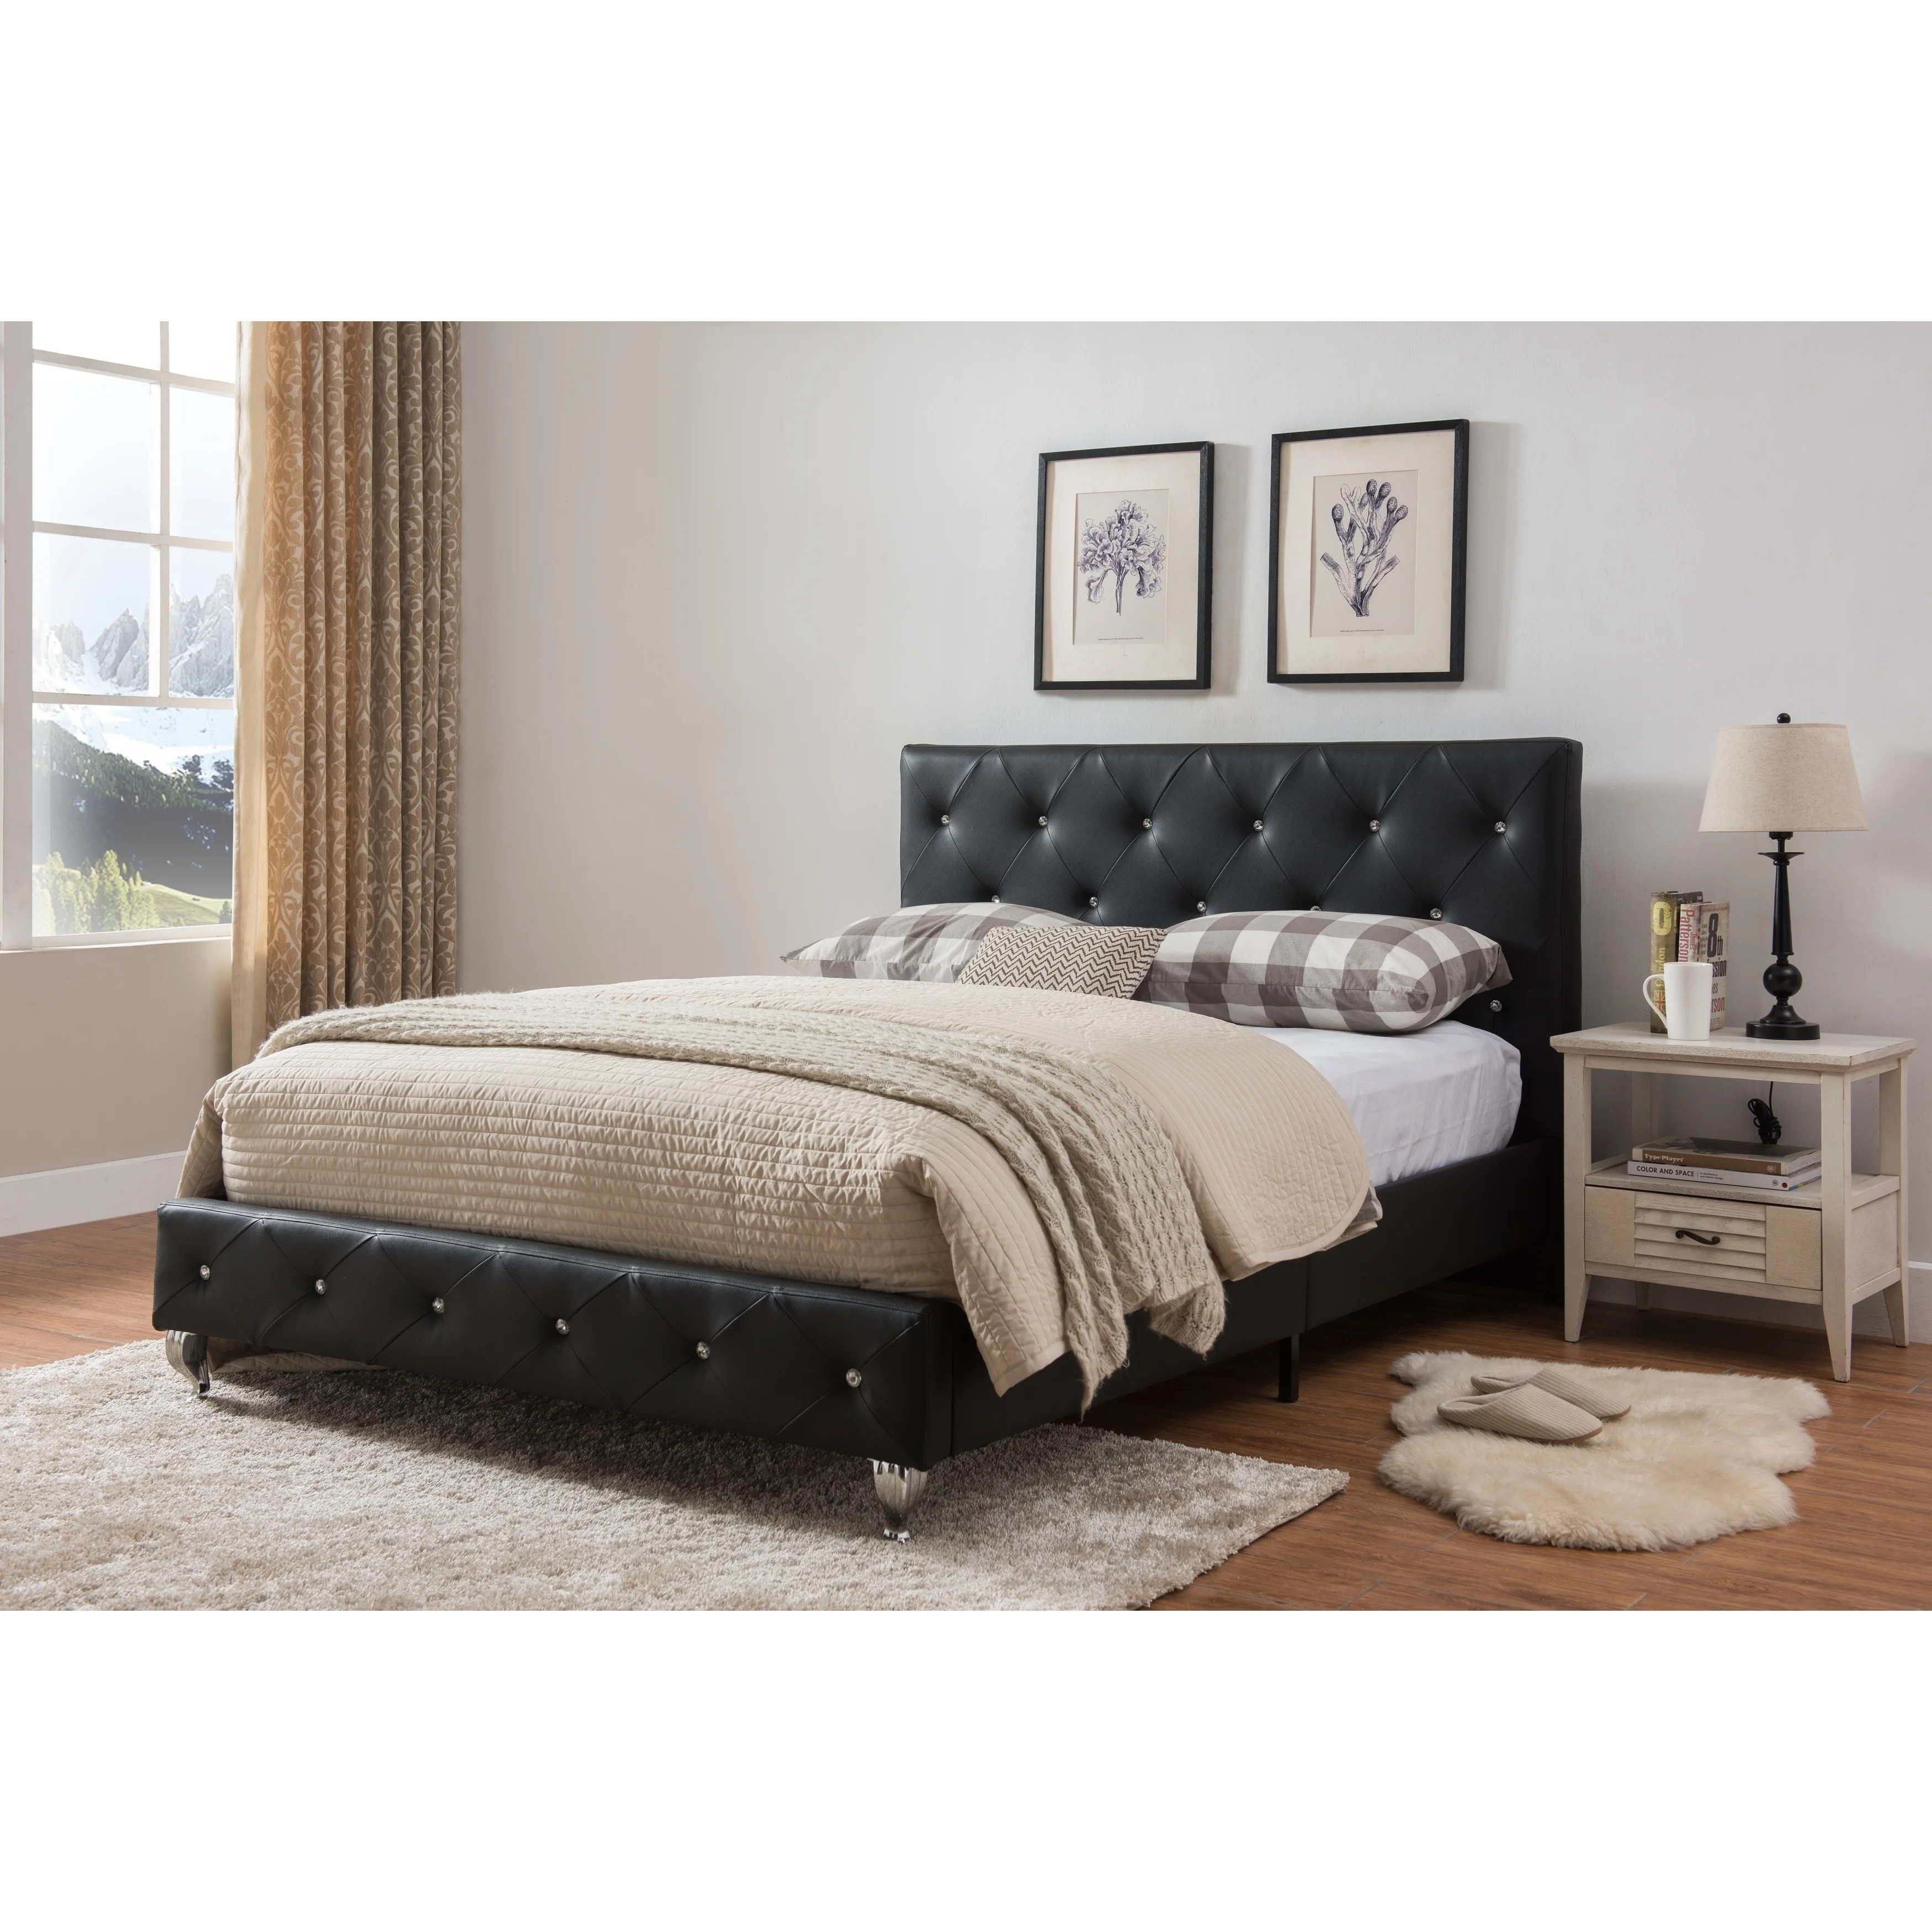 King Size Upholstered Beds Black Faux Leather On Sale Overstock 24238761